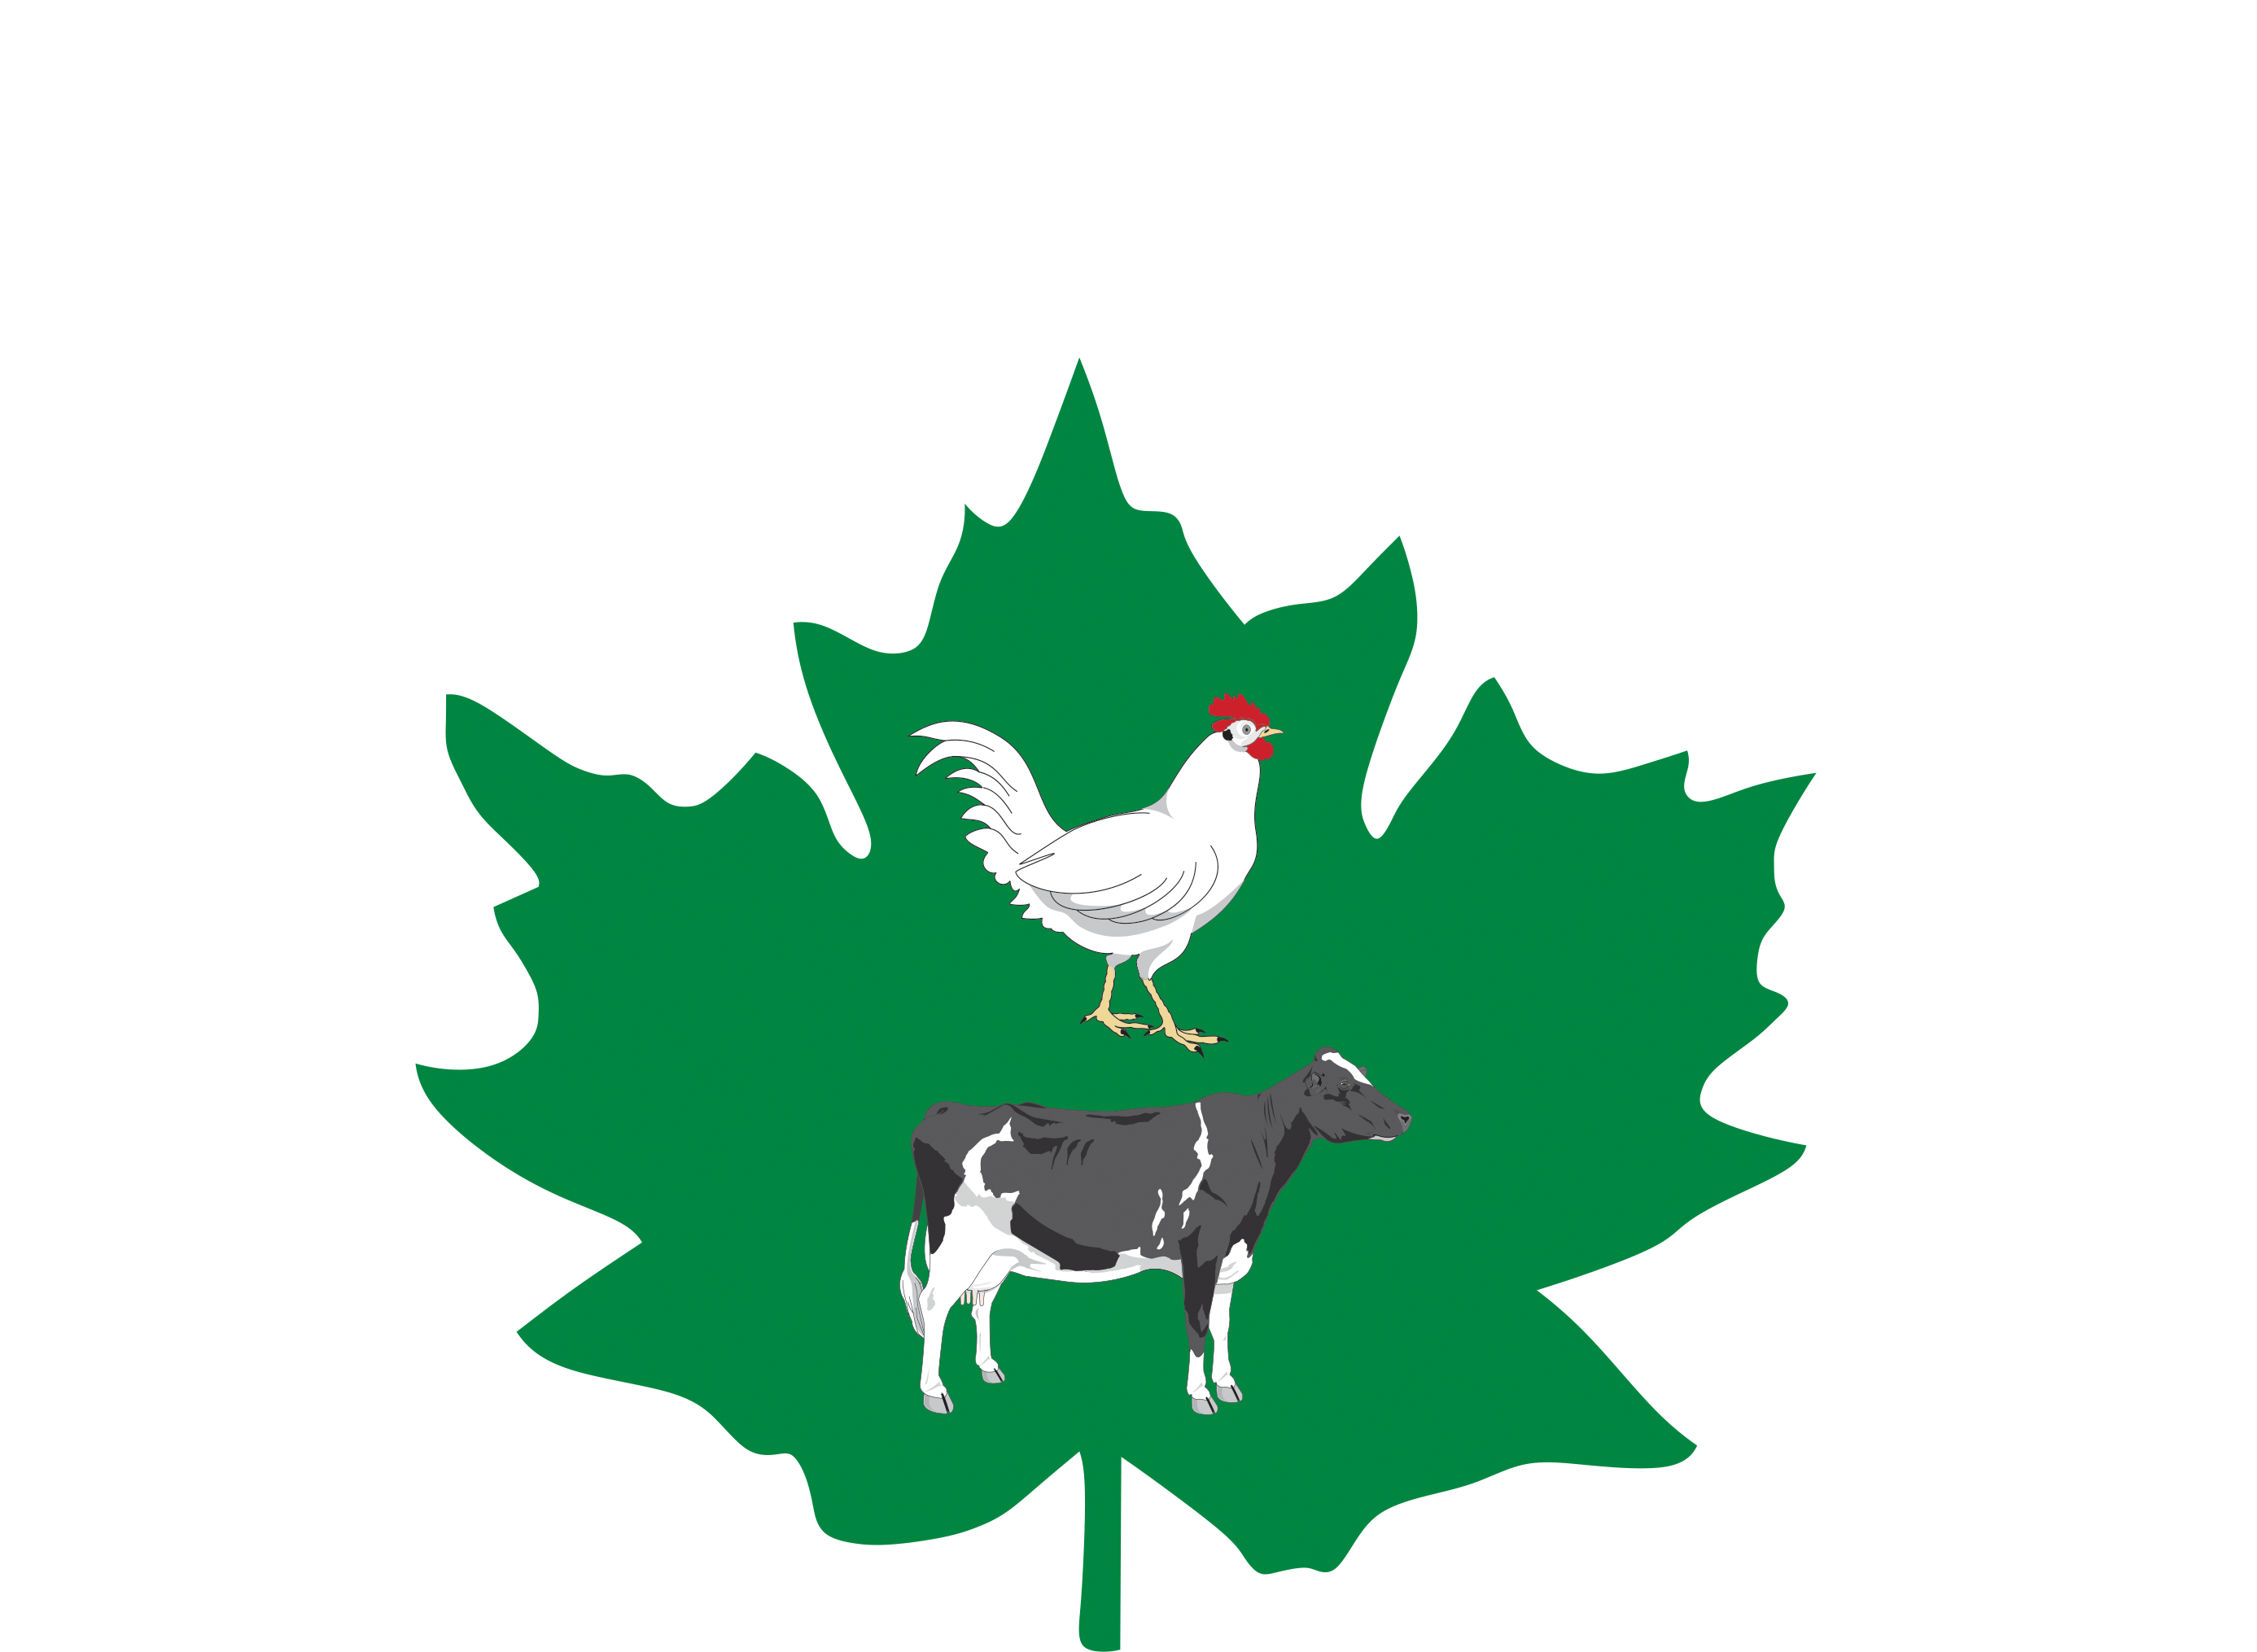 Merle Maple logo